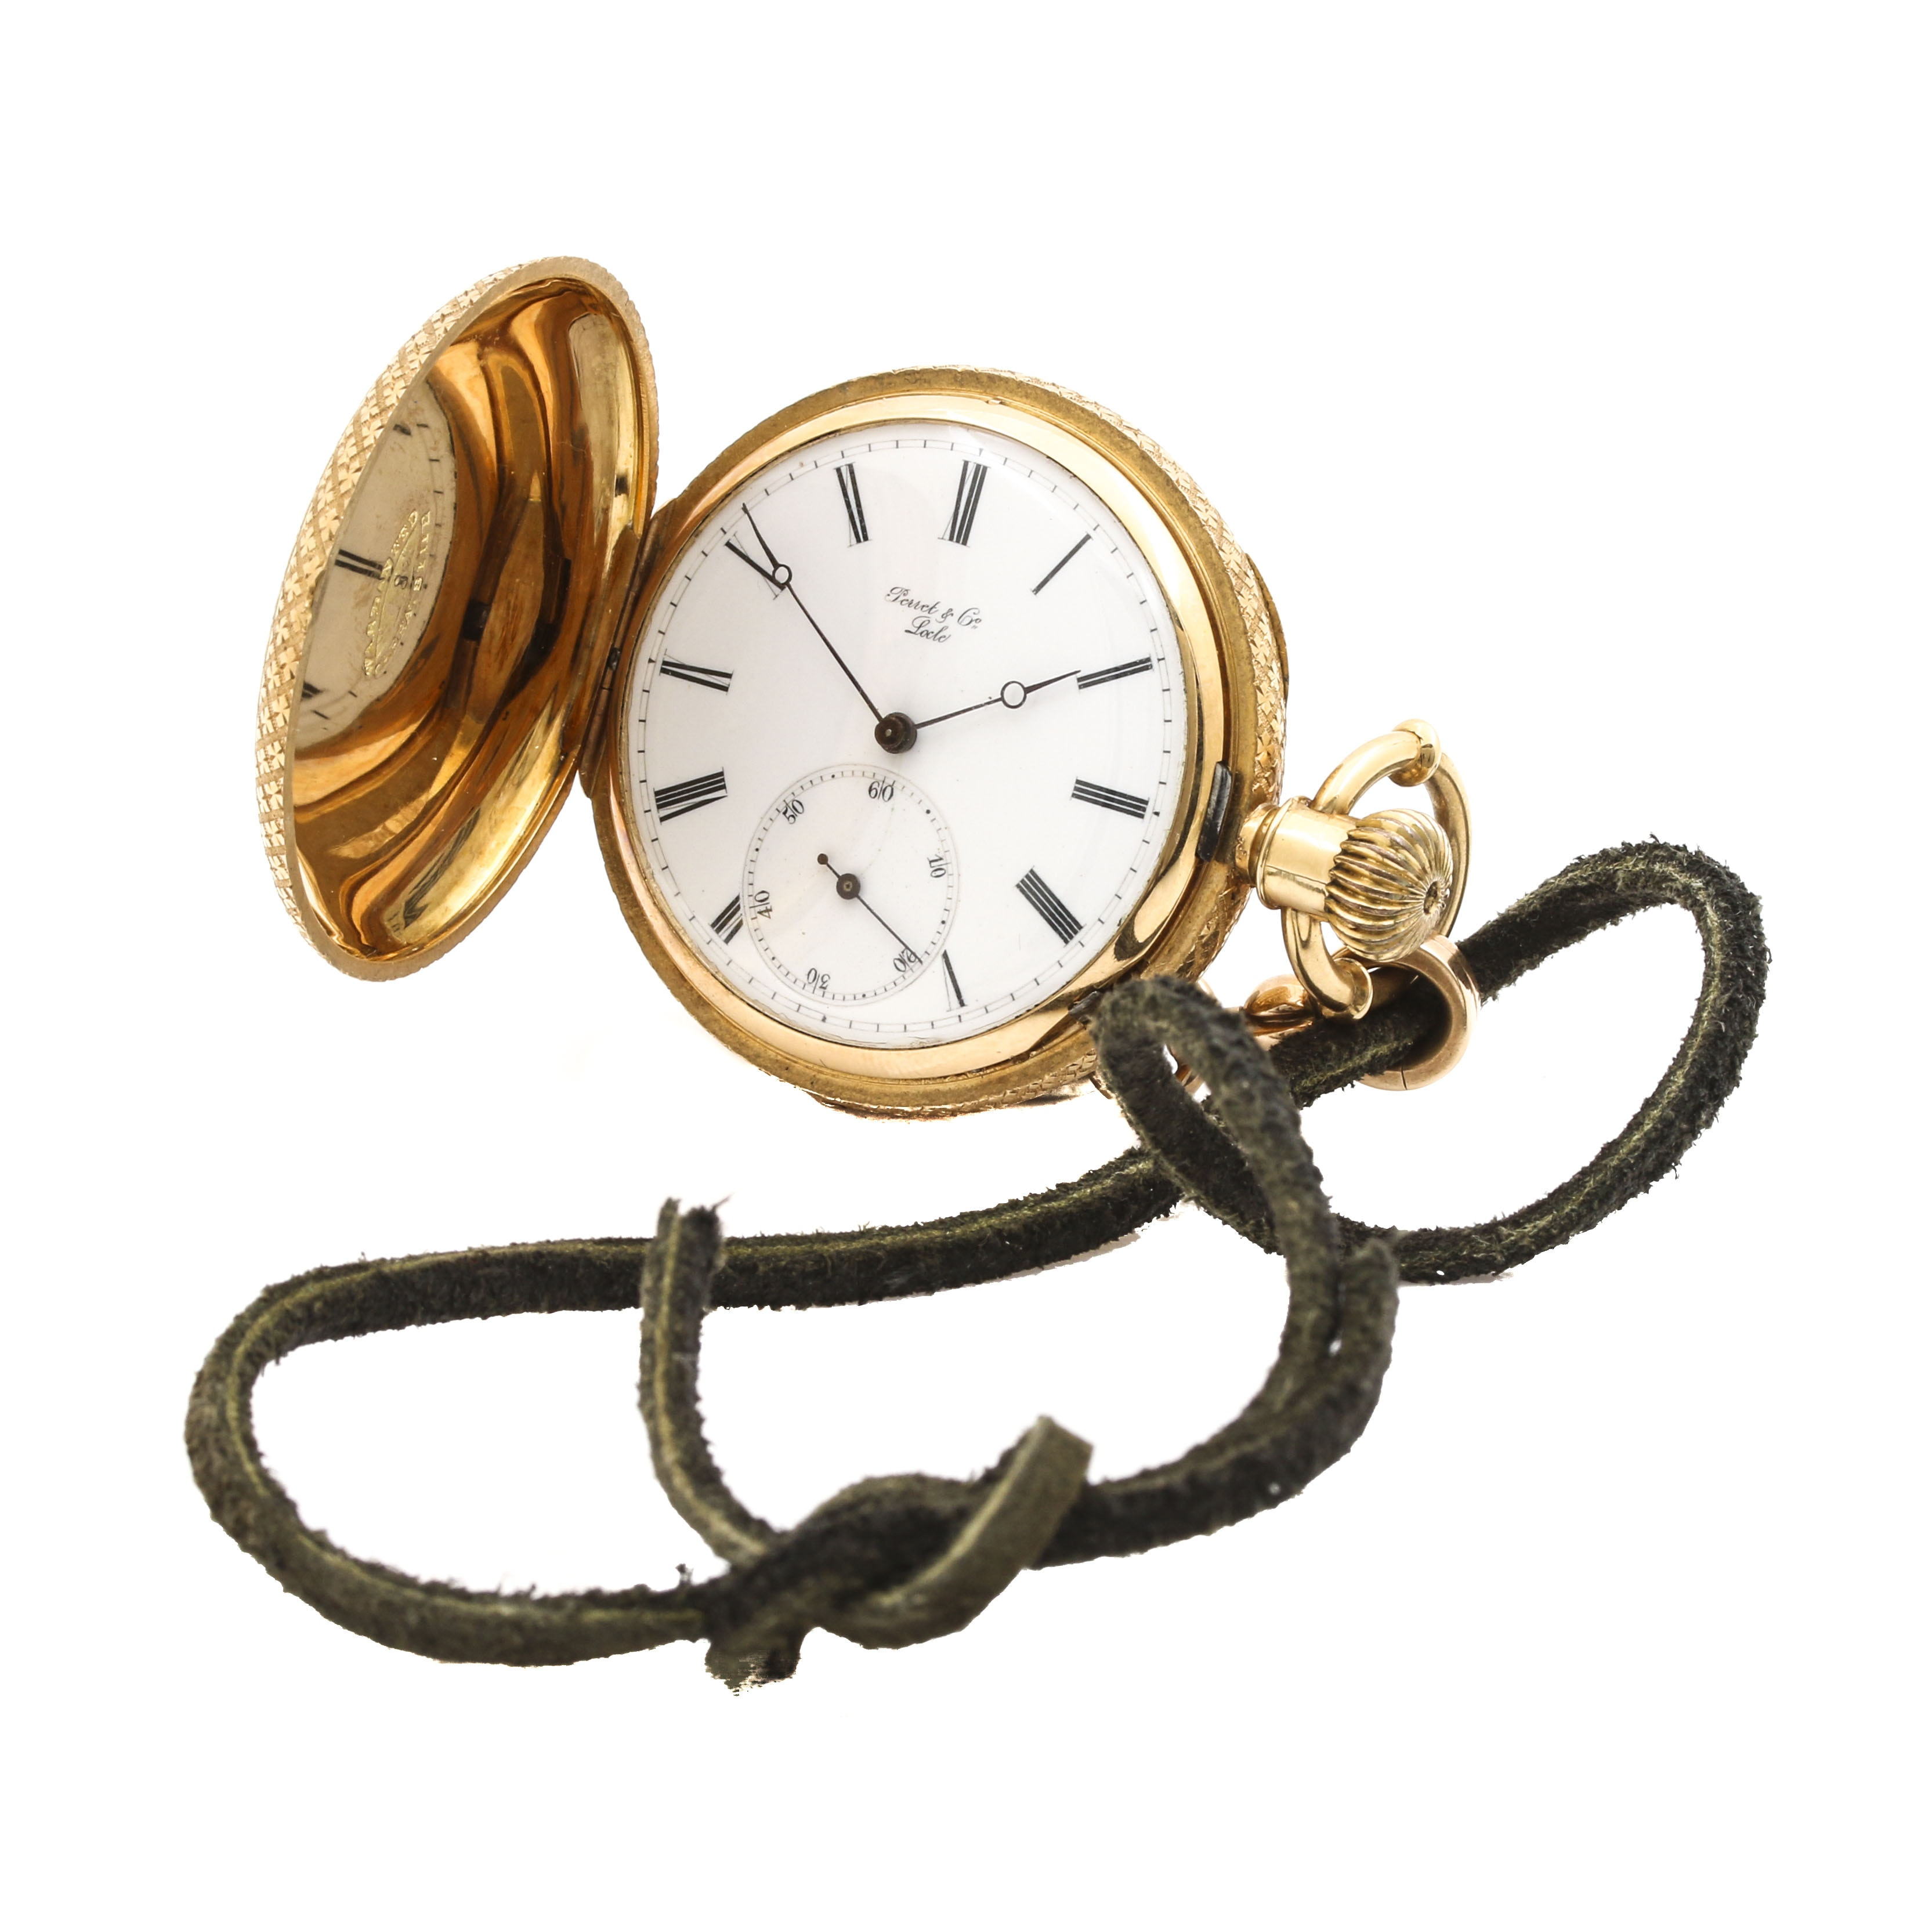 Vintage Perrit & Co 18K Yellow Gold Hunting Case Pocket Watch